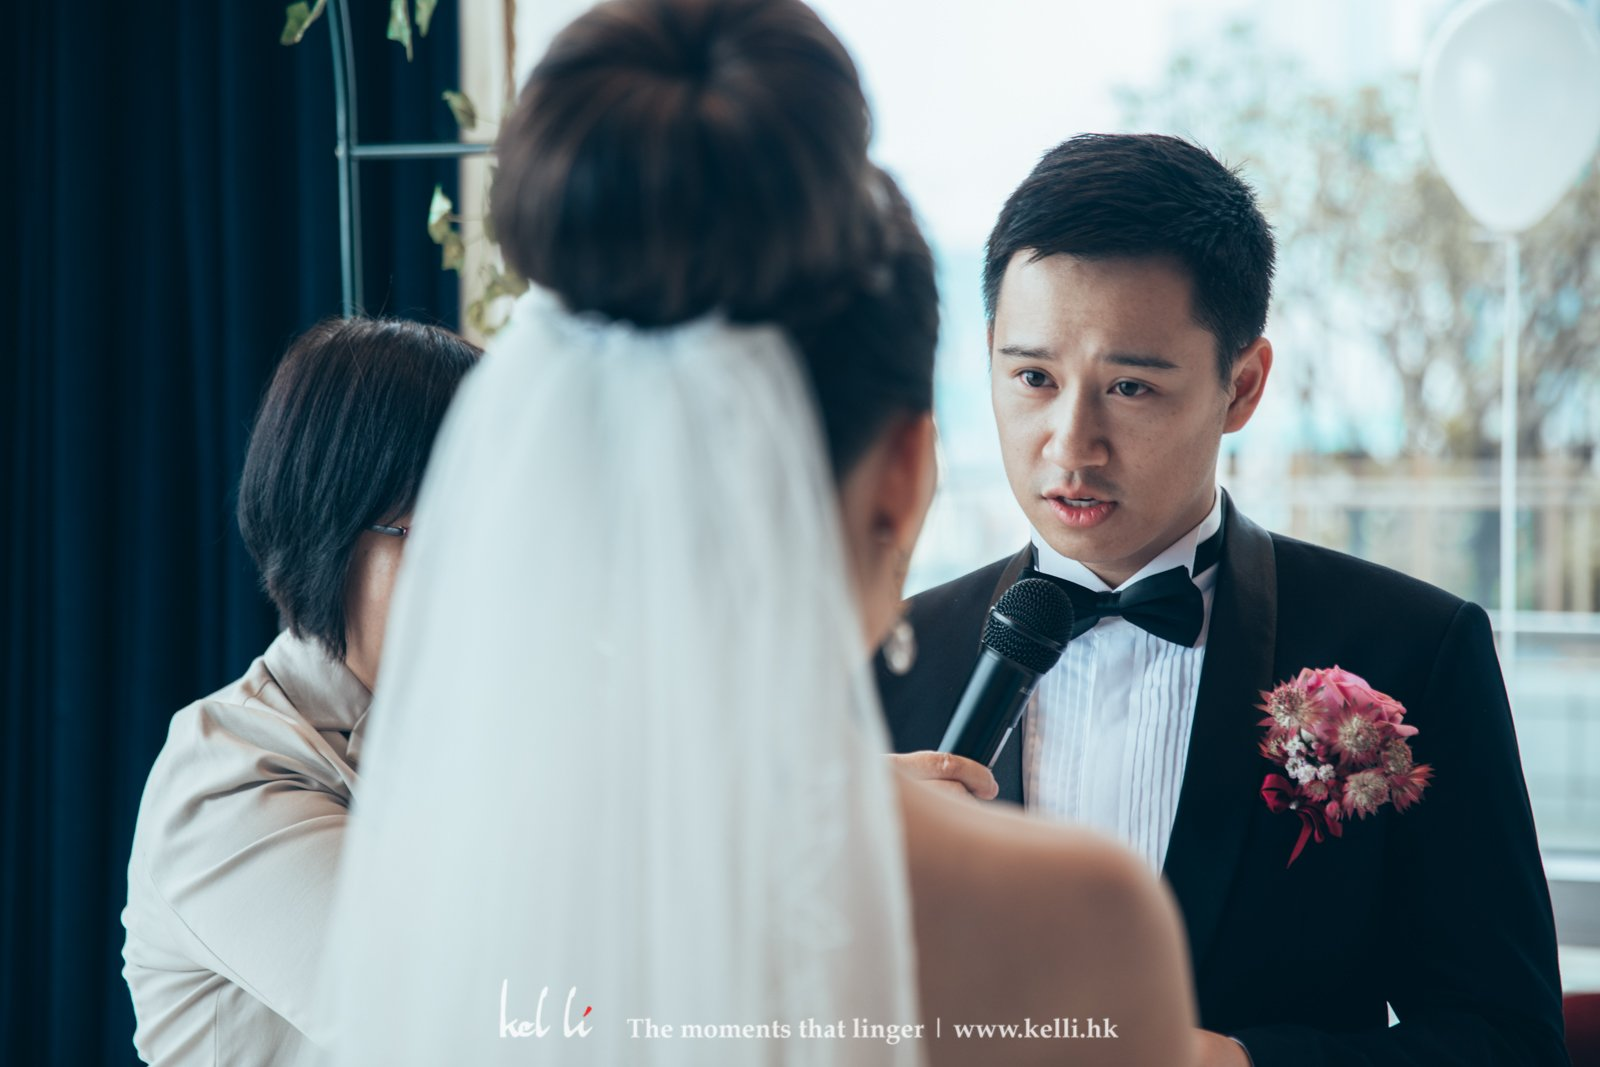 The vow from the groom